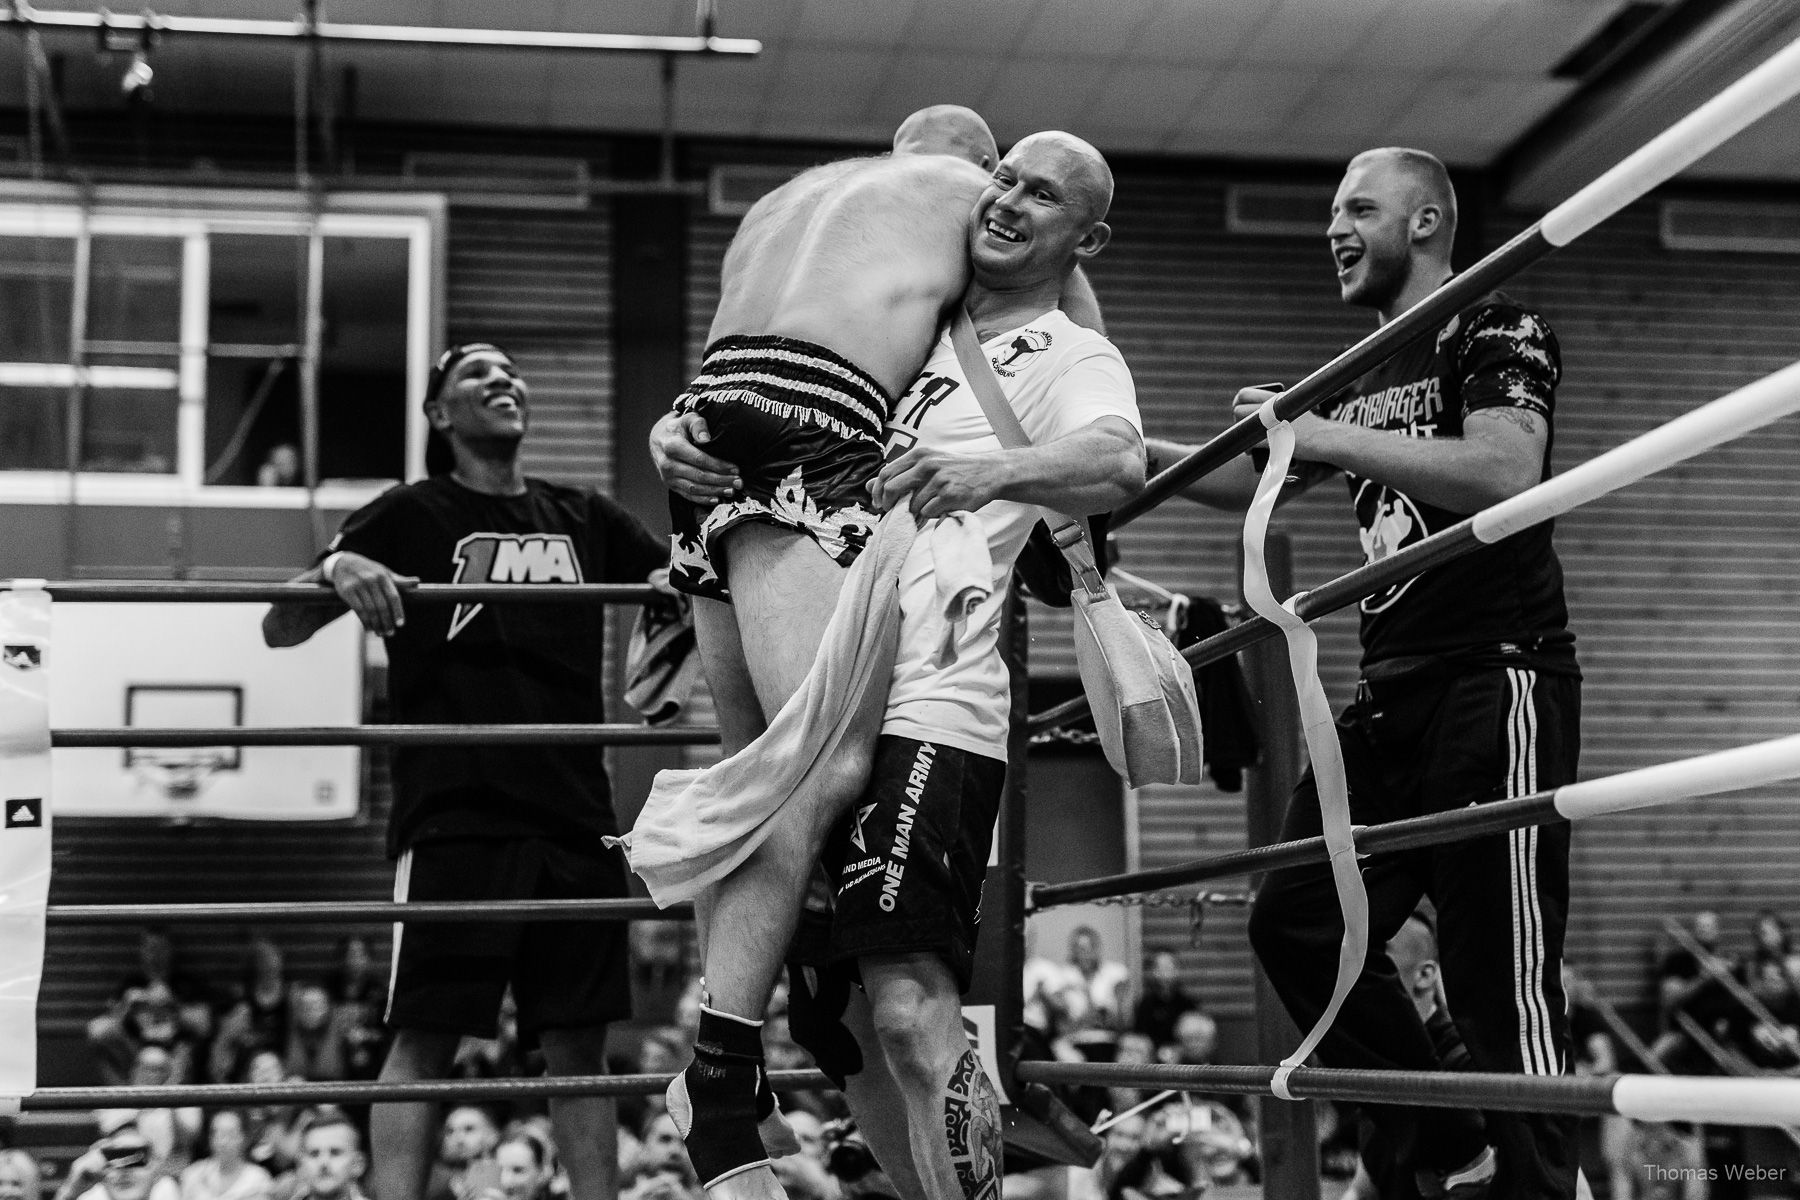 3. Oldenburger Fightnight von Nikita Pankraz, Fotograf Thomas Weber